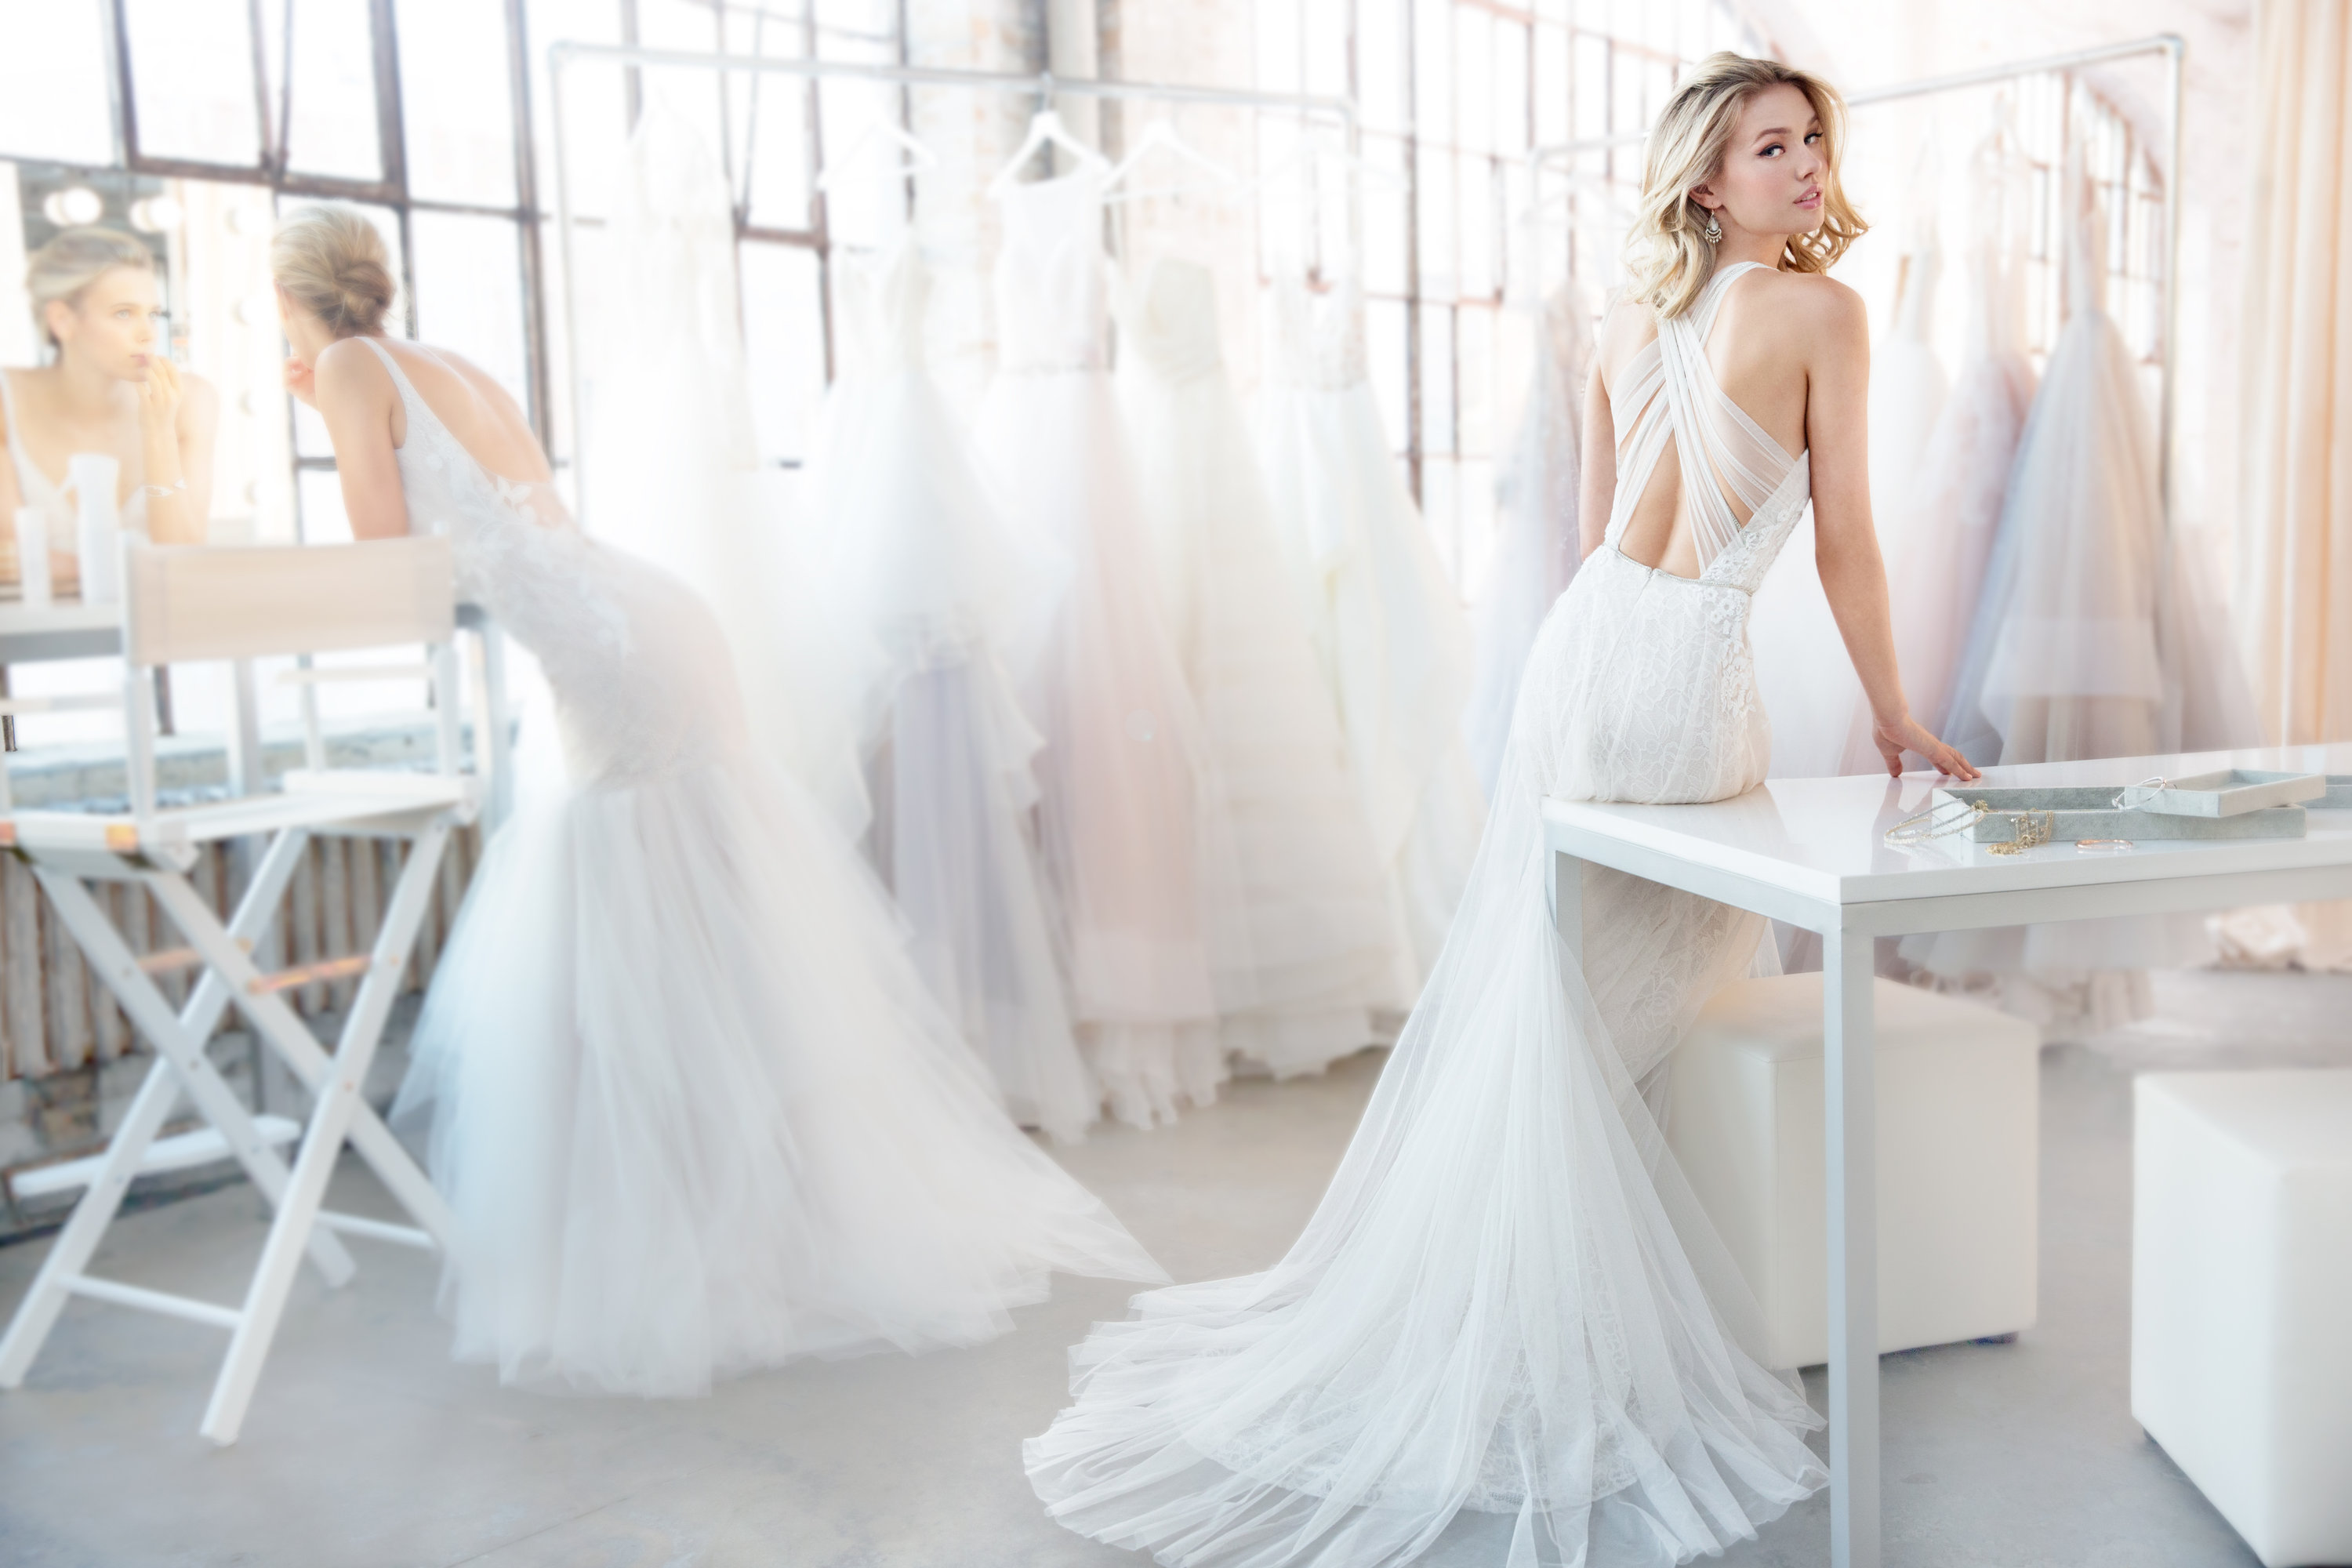 Bridal Gowns and Wedding Dresses by JLM Couture - Style 1803 Dawson